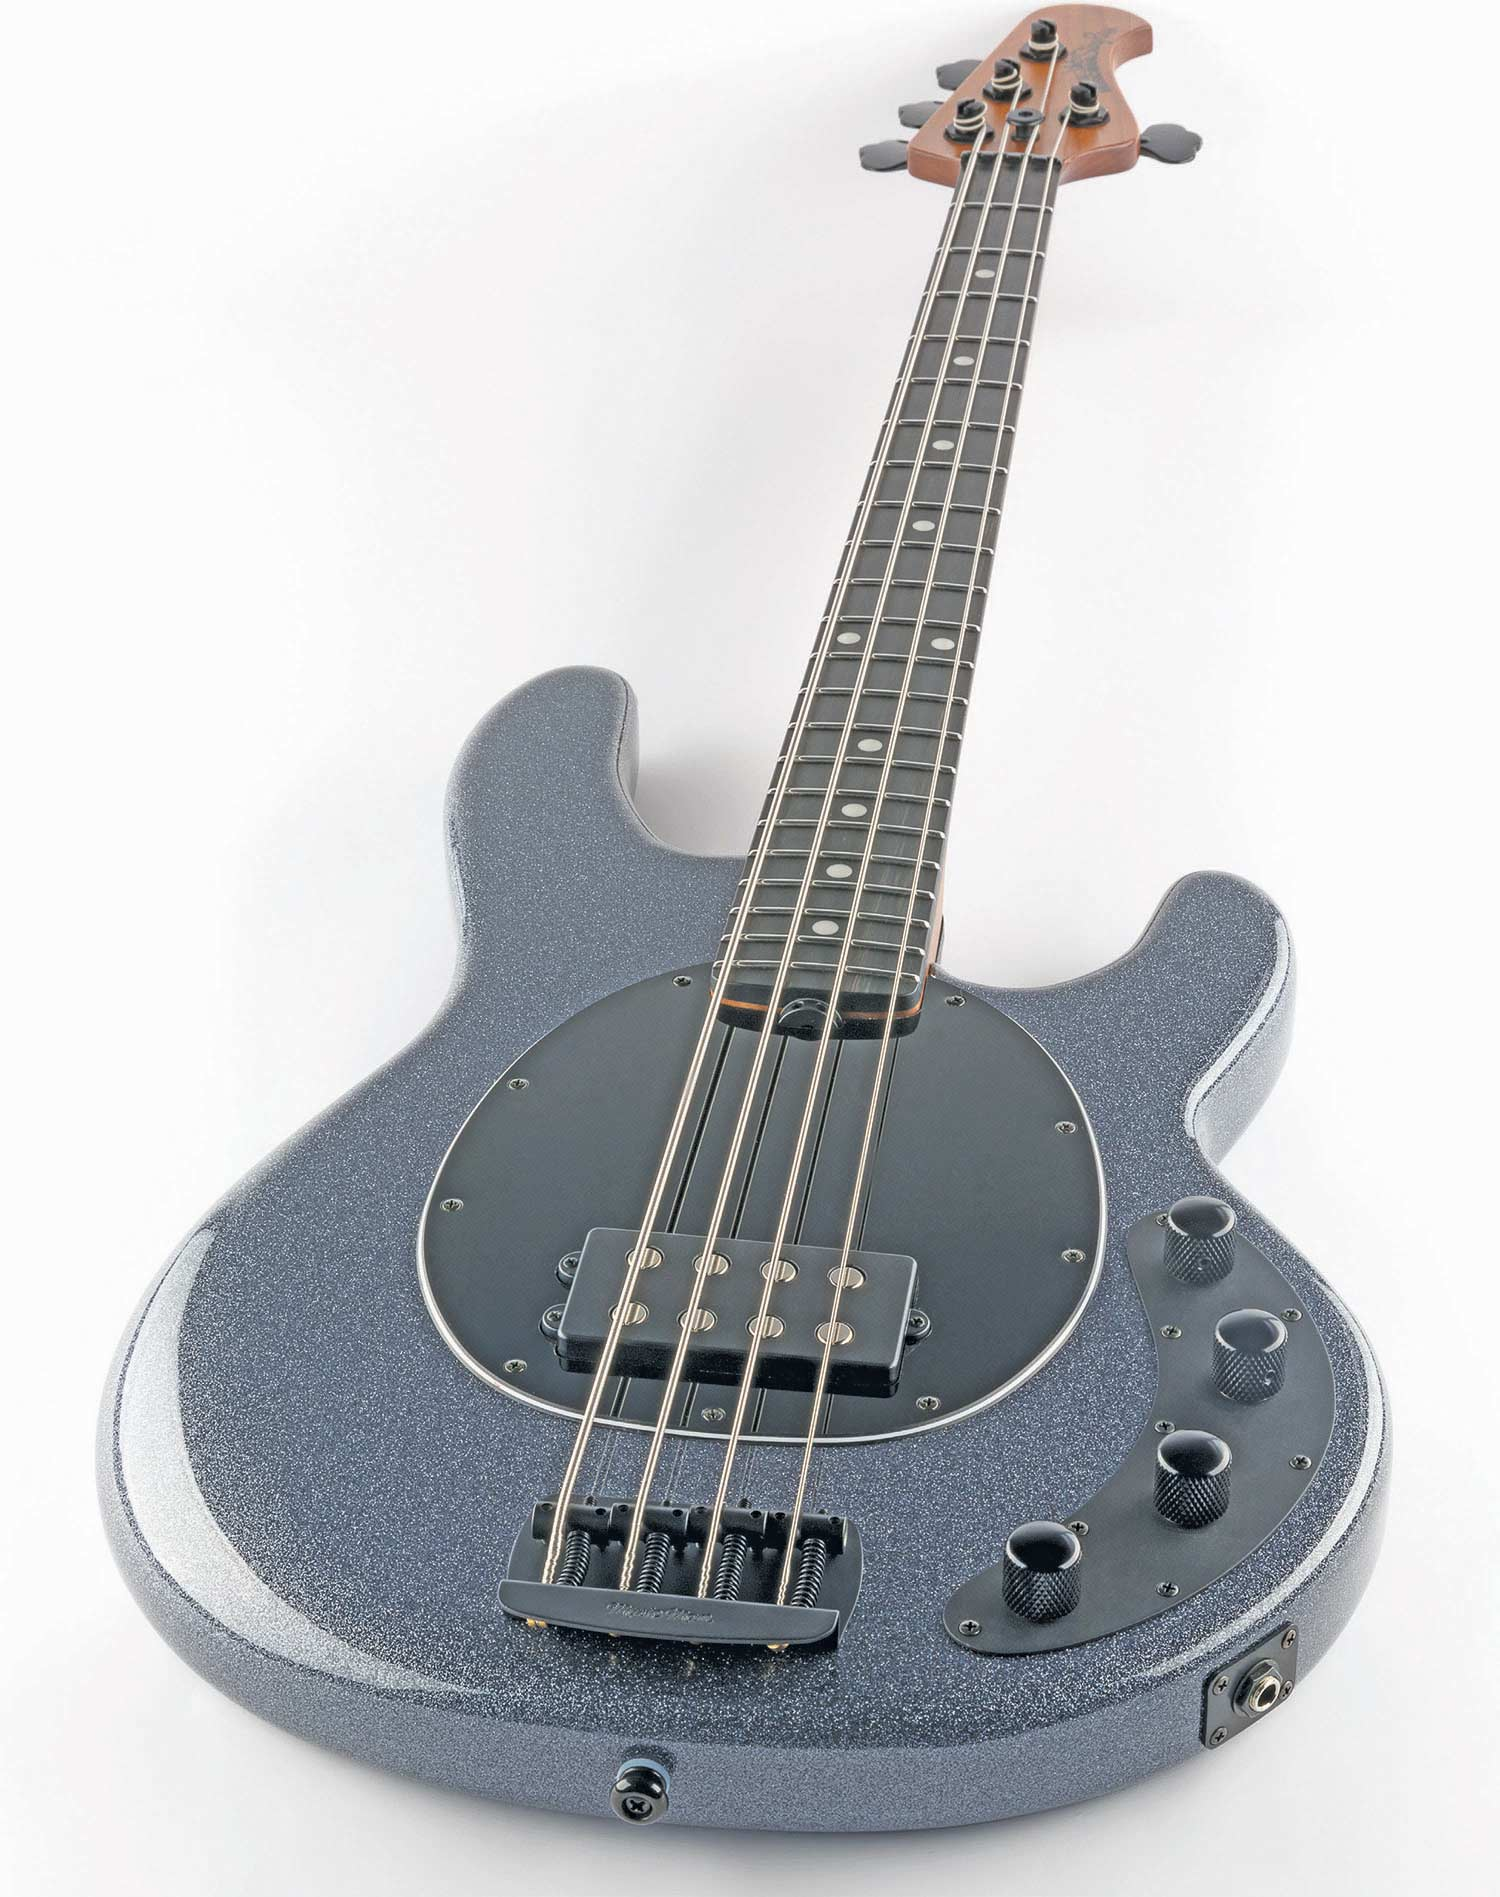 Why the Ernie Ball Music Man StingRay Remains the Top Choice of Countless Pro Bassists